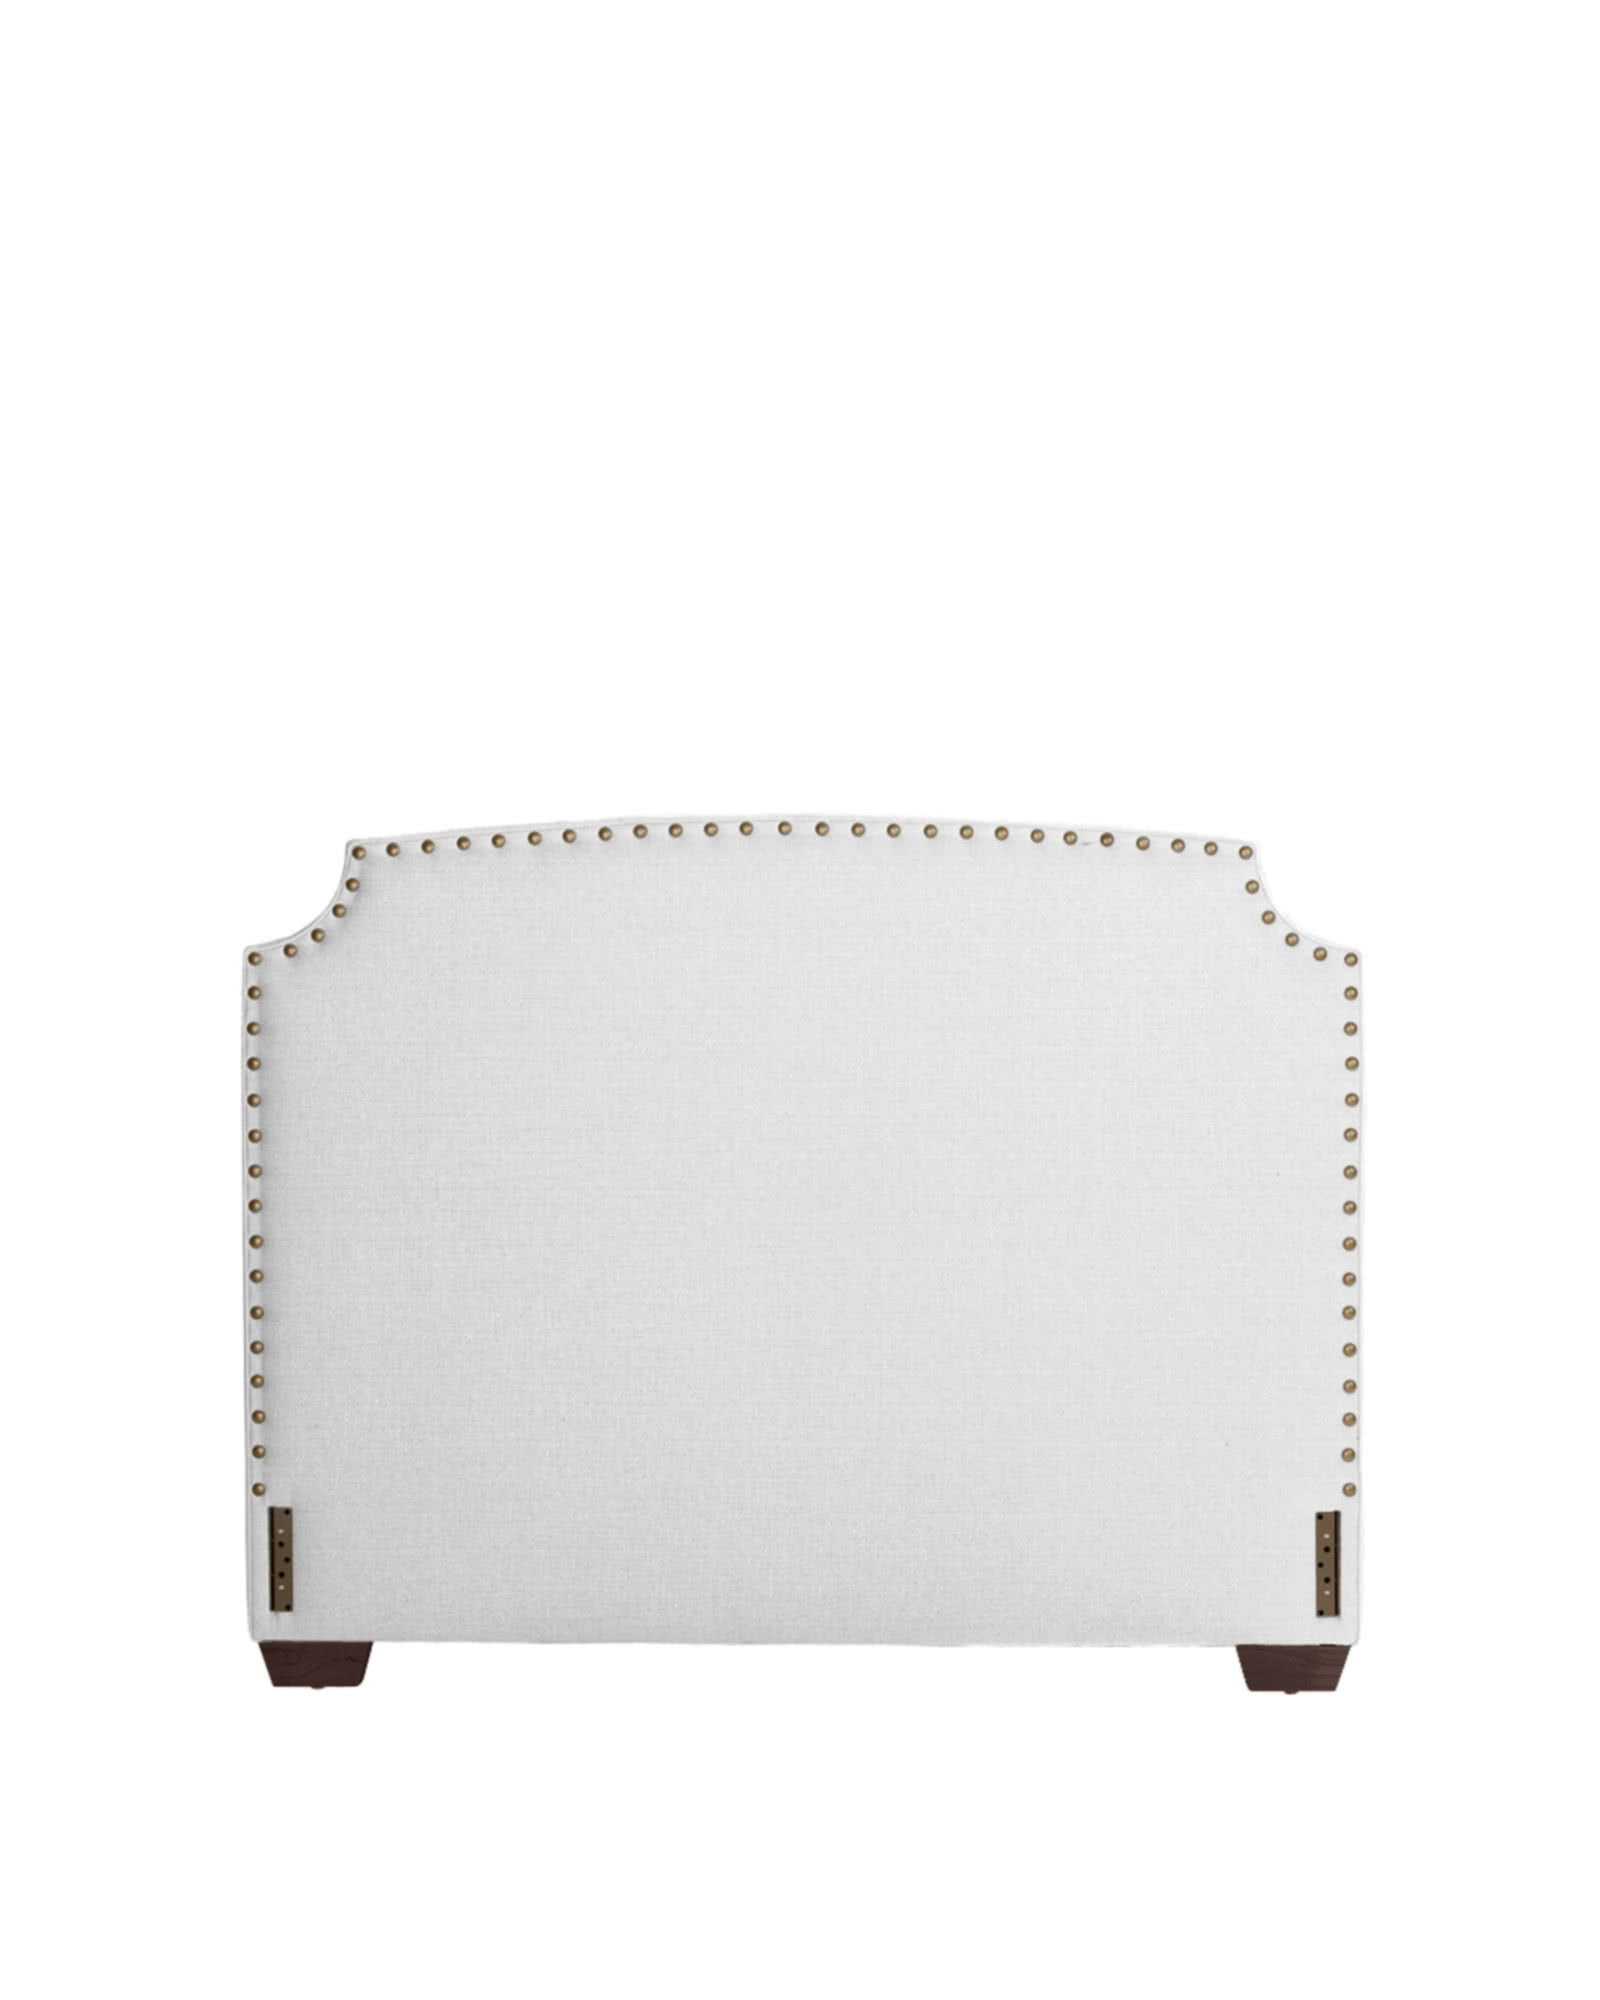 Fillmore Headboard with Nailheads,